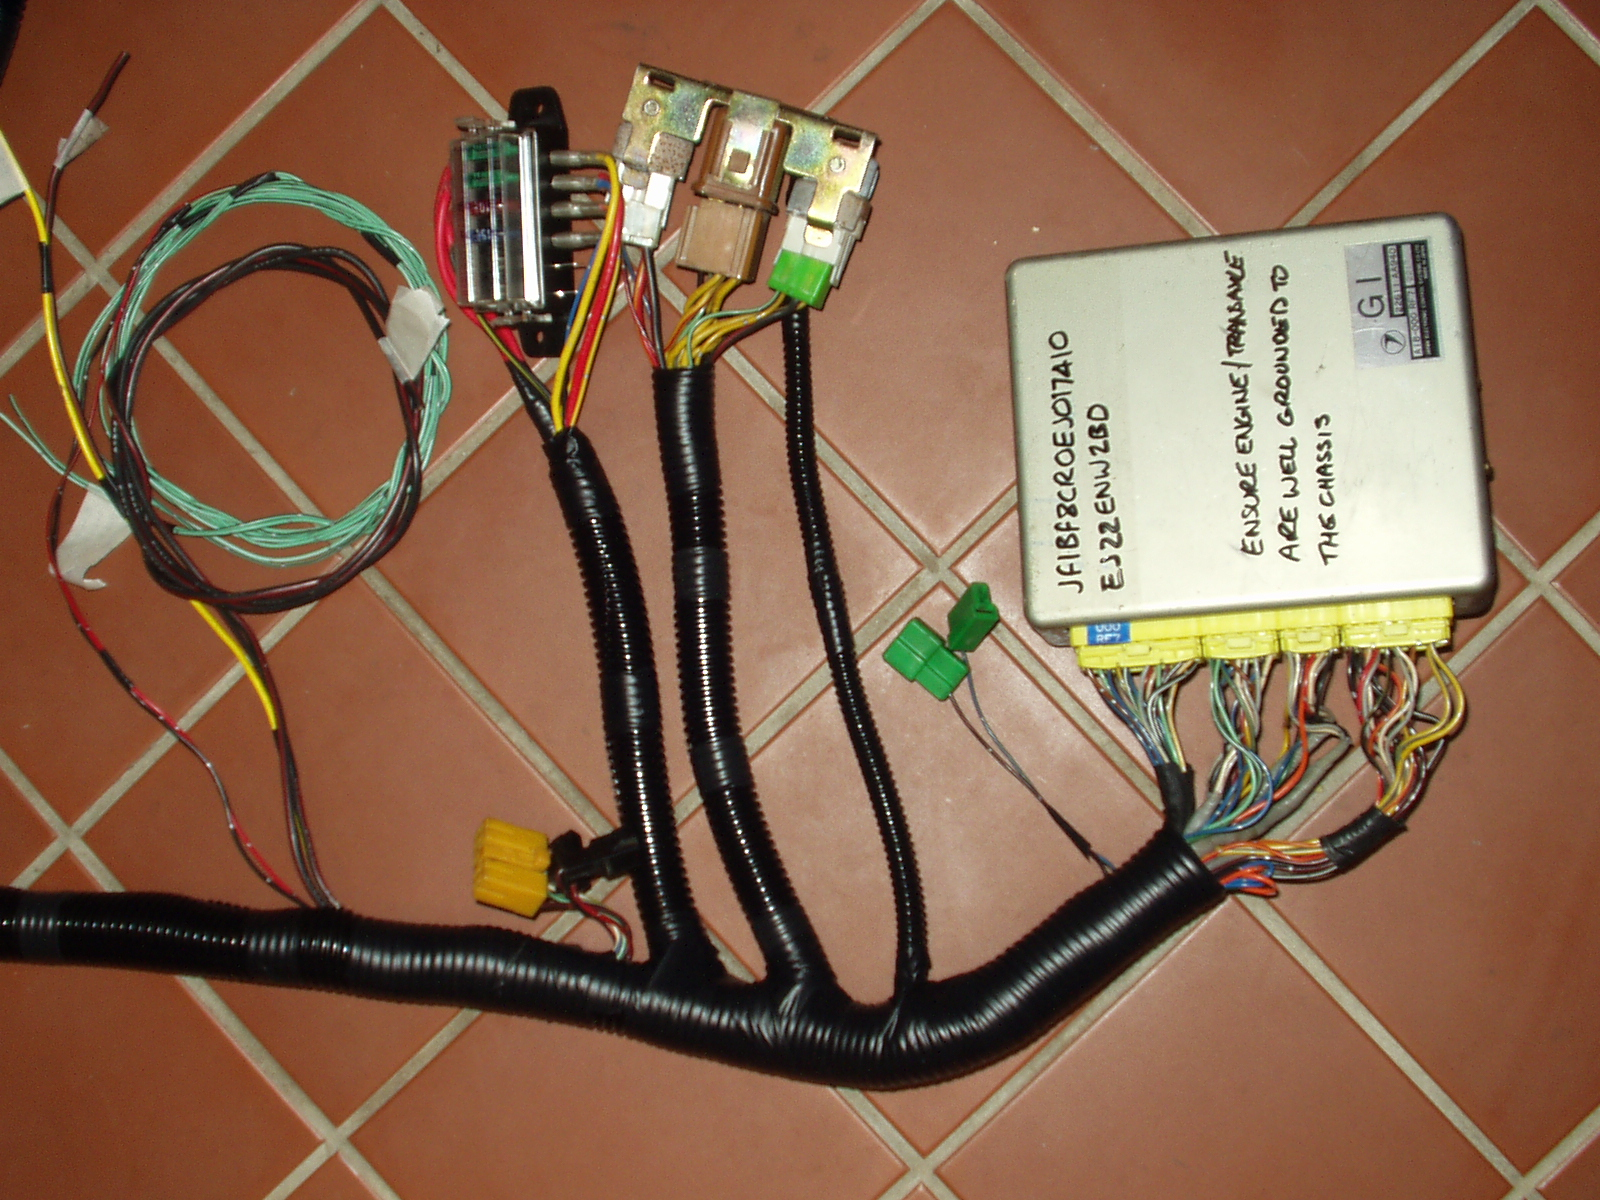 Harness Building on bmw 2 8 engine wire harness, engine control module, engine harmonic balancer, oem engine wire harness, suspension harness, dodge sprinter engine harness, hoist harness,